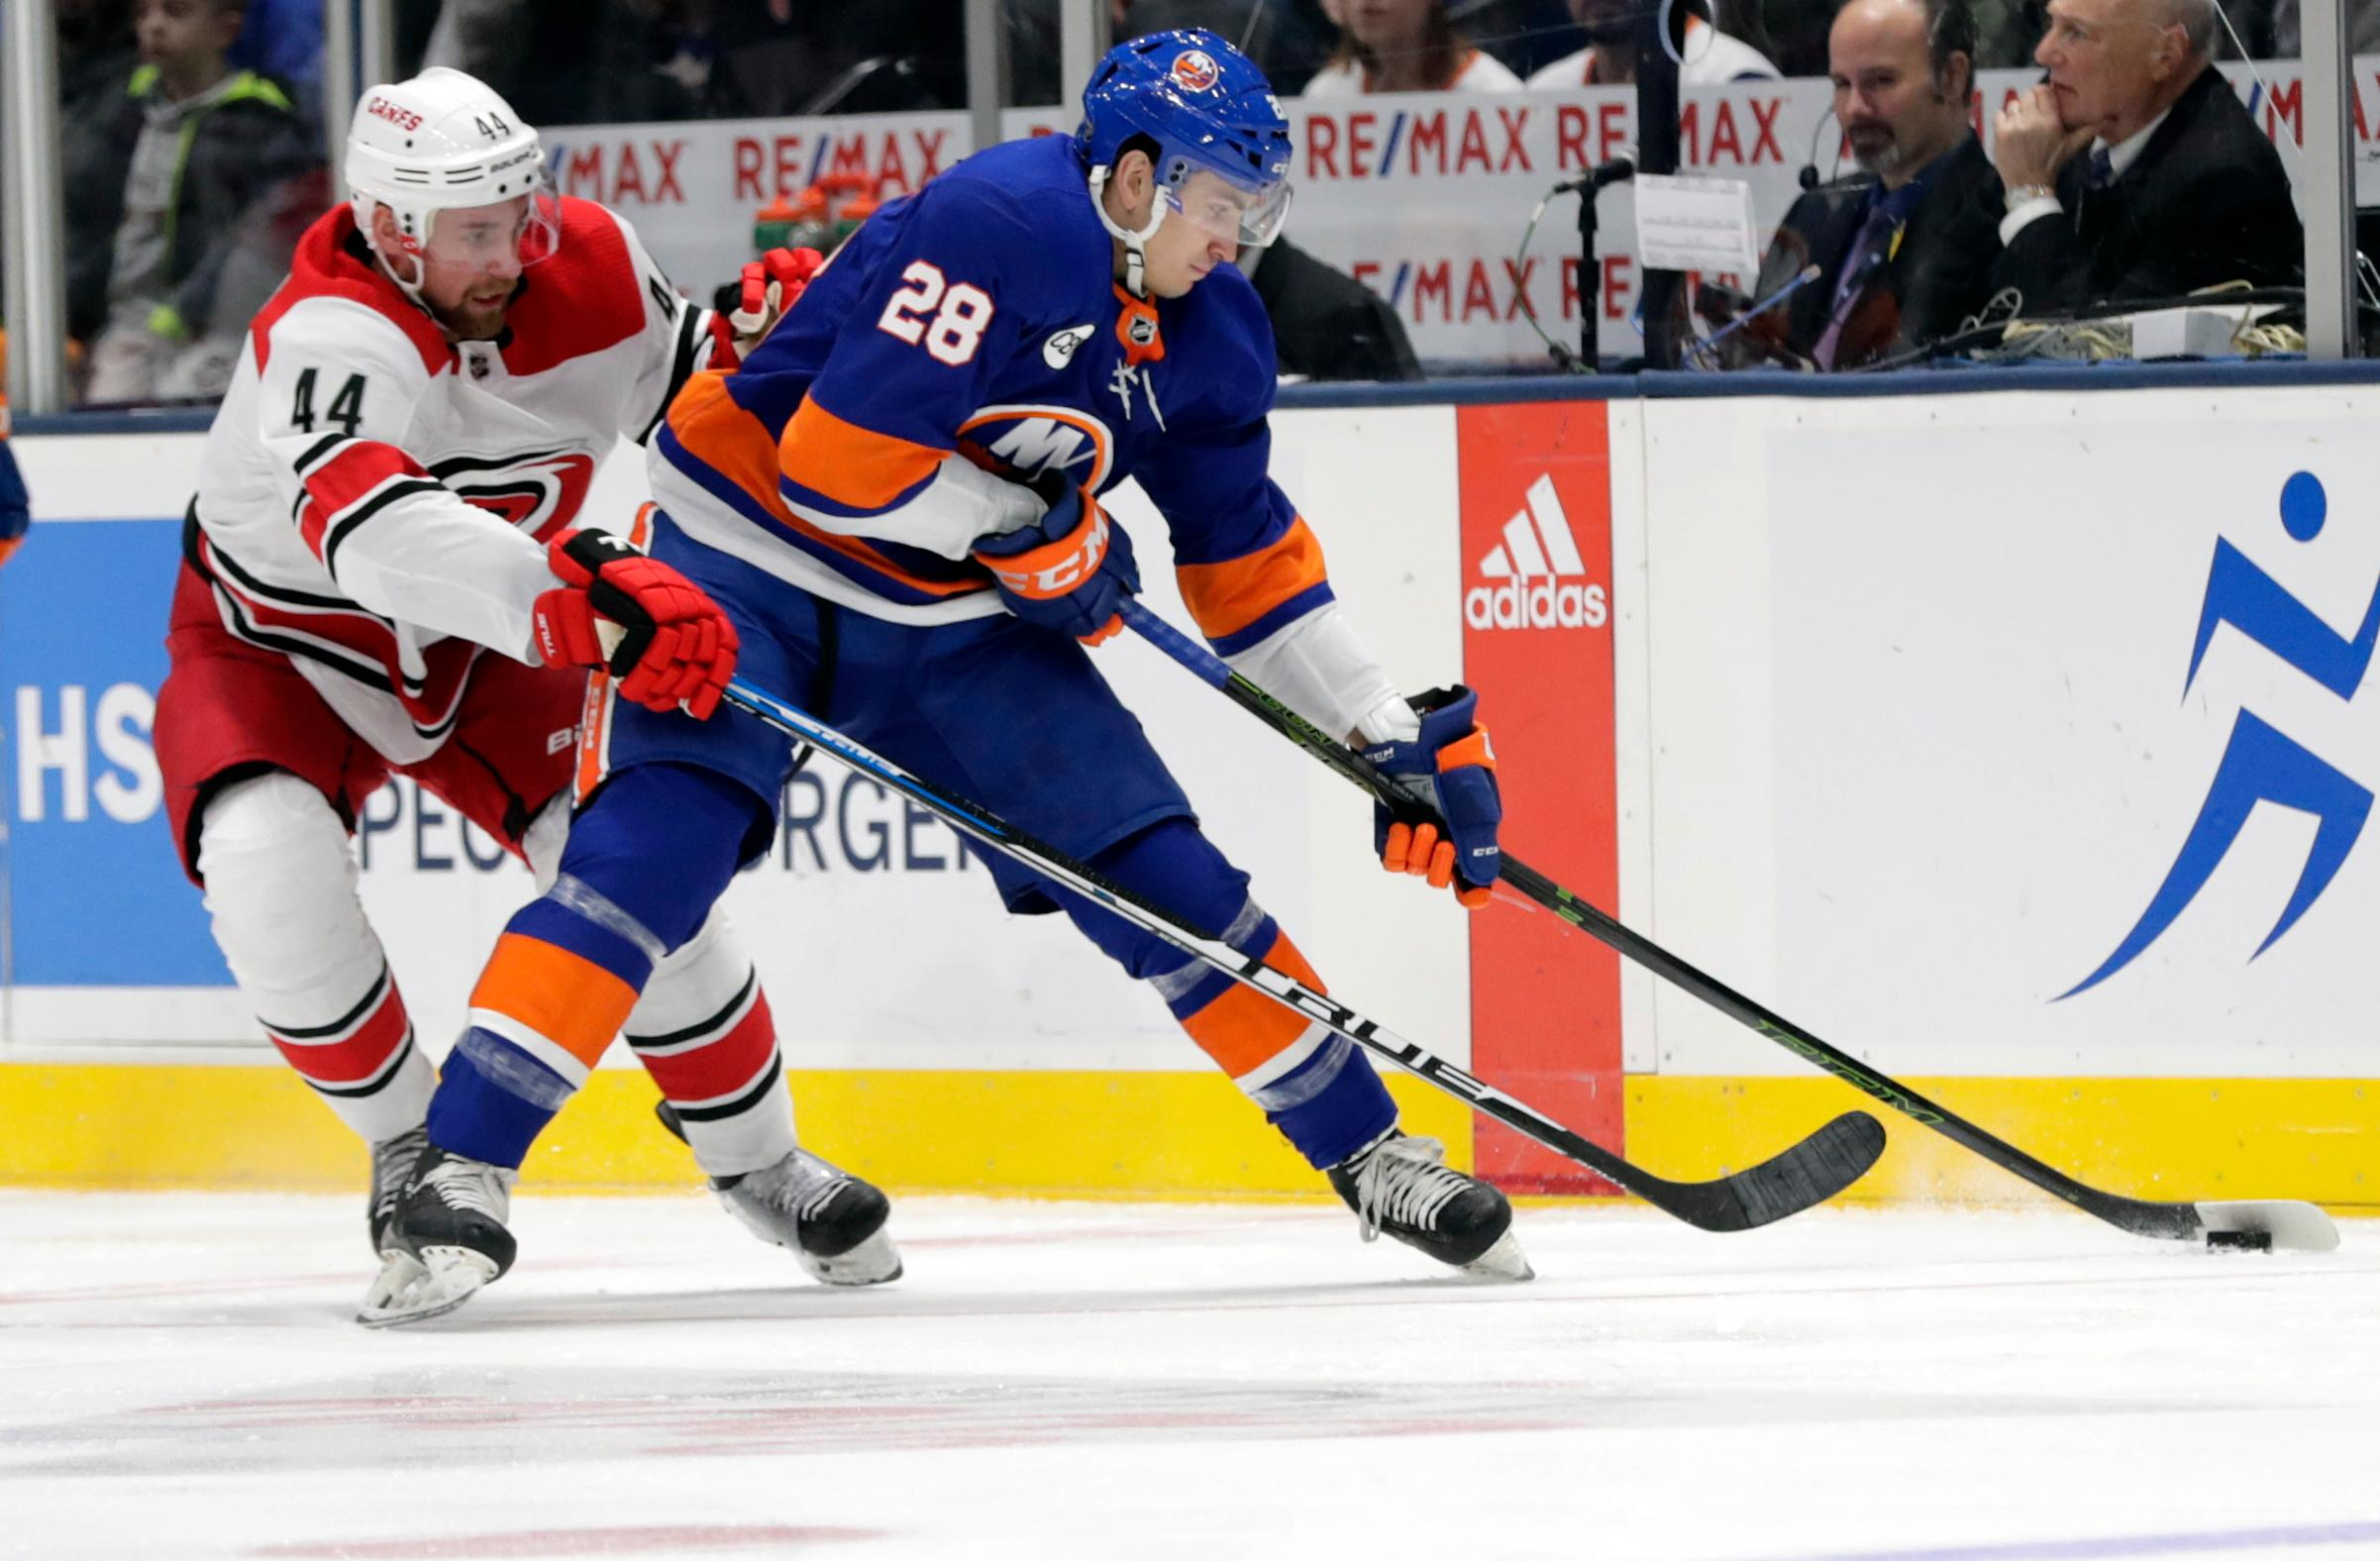 Carolina Hurricanes' Calvin de Haan (44) fights for control of the puck with New York Islanders' Michael Dal Colle (28) during the first period of an NHL hockey game Tuesday, Jan. 8, 2019, in New York. (AP Photo/Frank Franklin II)